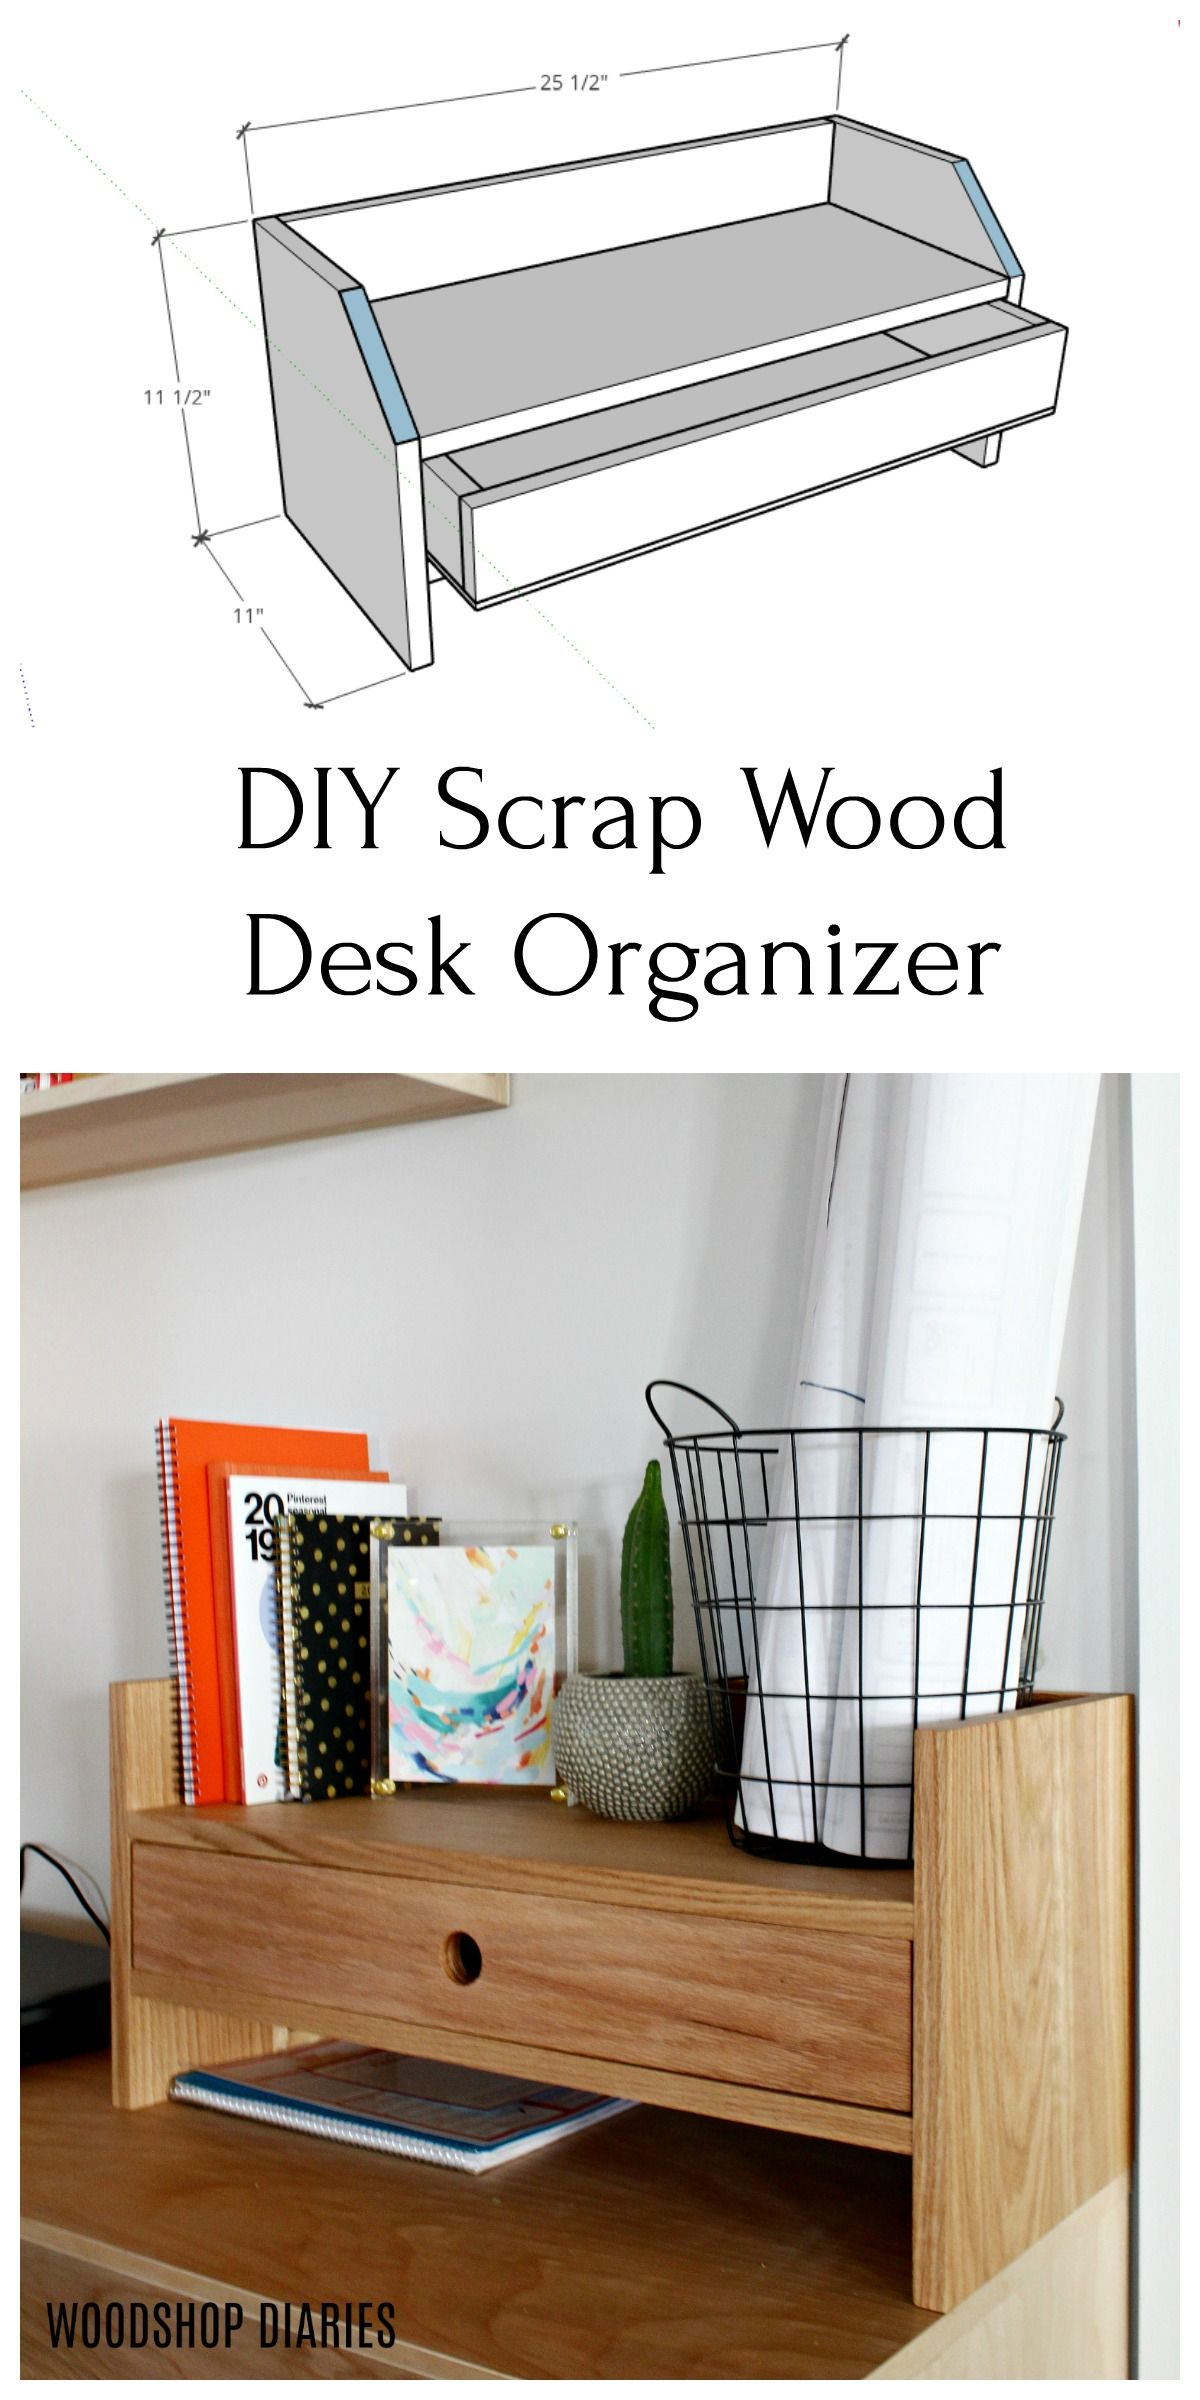 Simple Diy Desk Organizer In 2020 Desk Organization Diy Diy Wood Desk Desk Organization